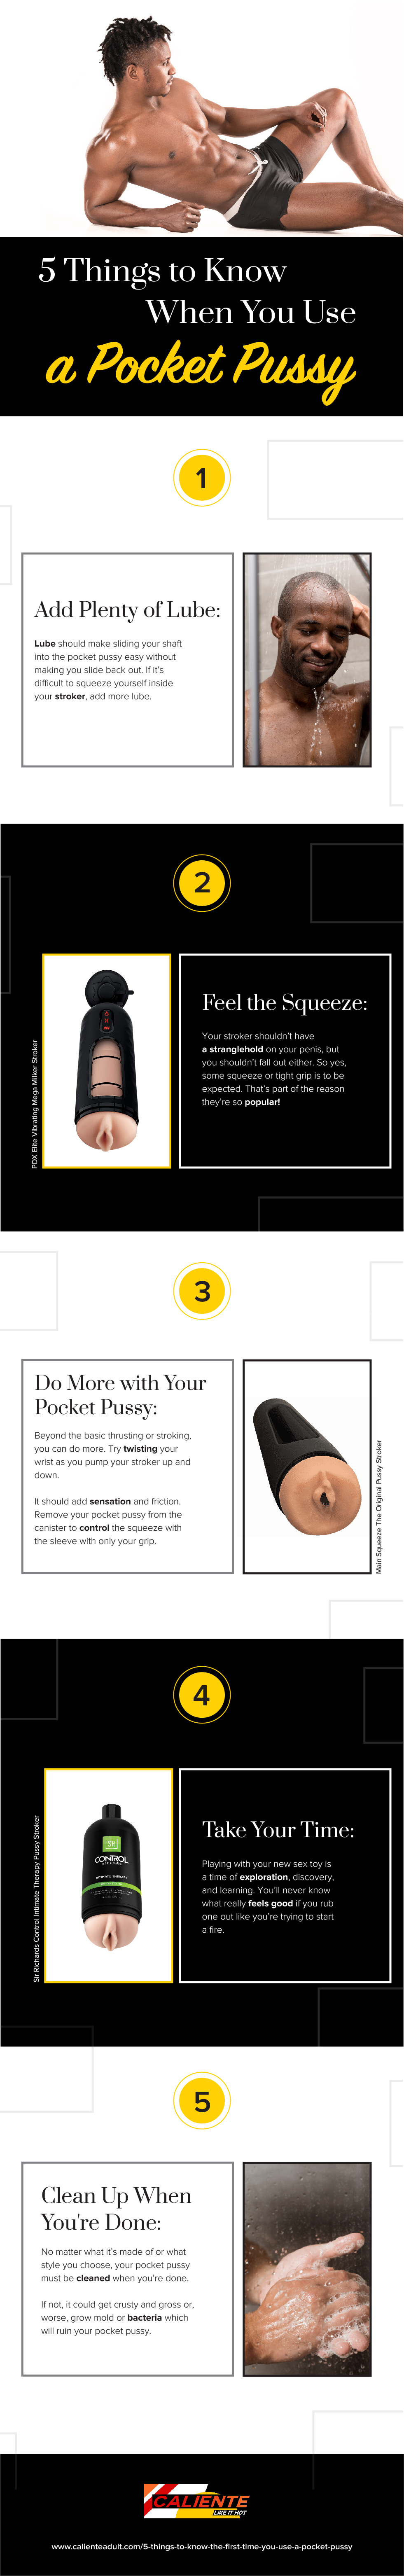 Infographic for 5 Things to Know the First Time You Use a Pocket Pussy